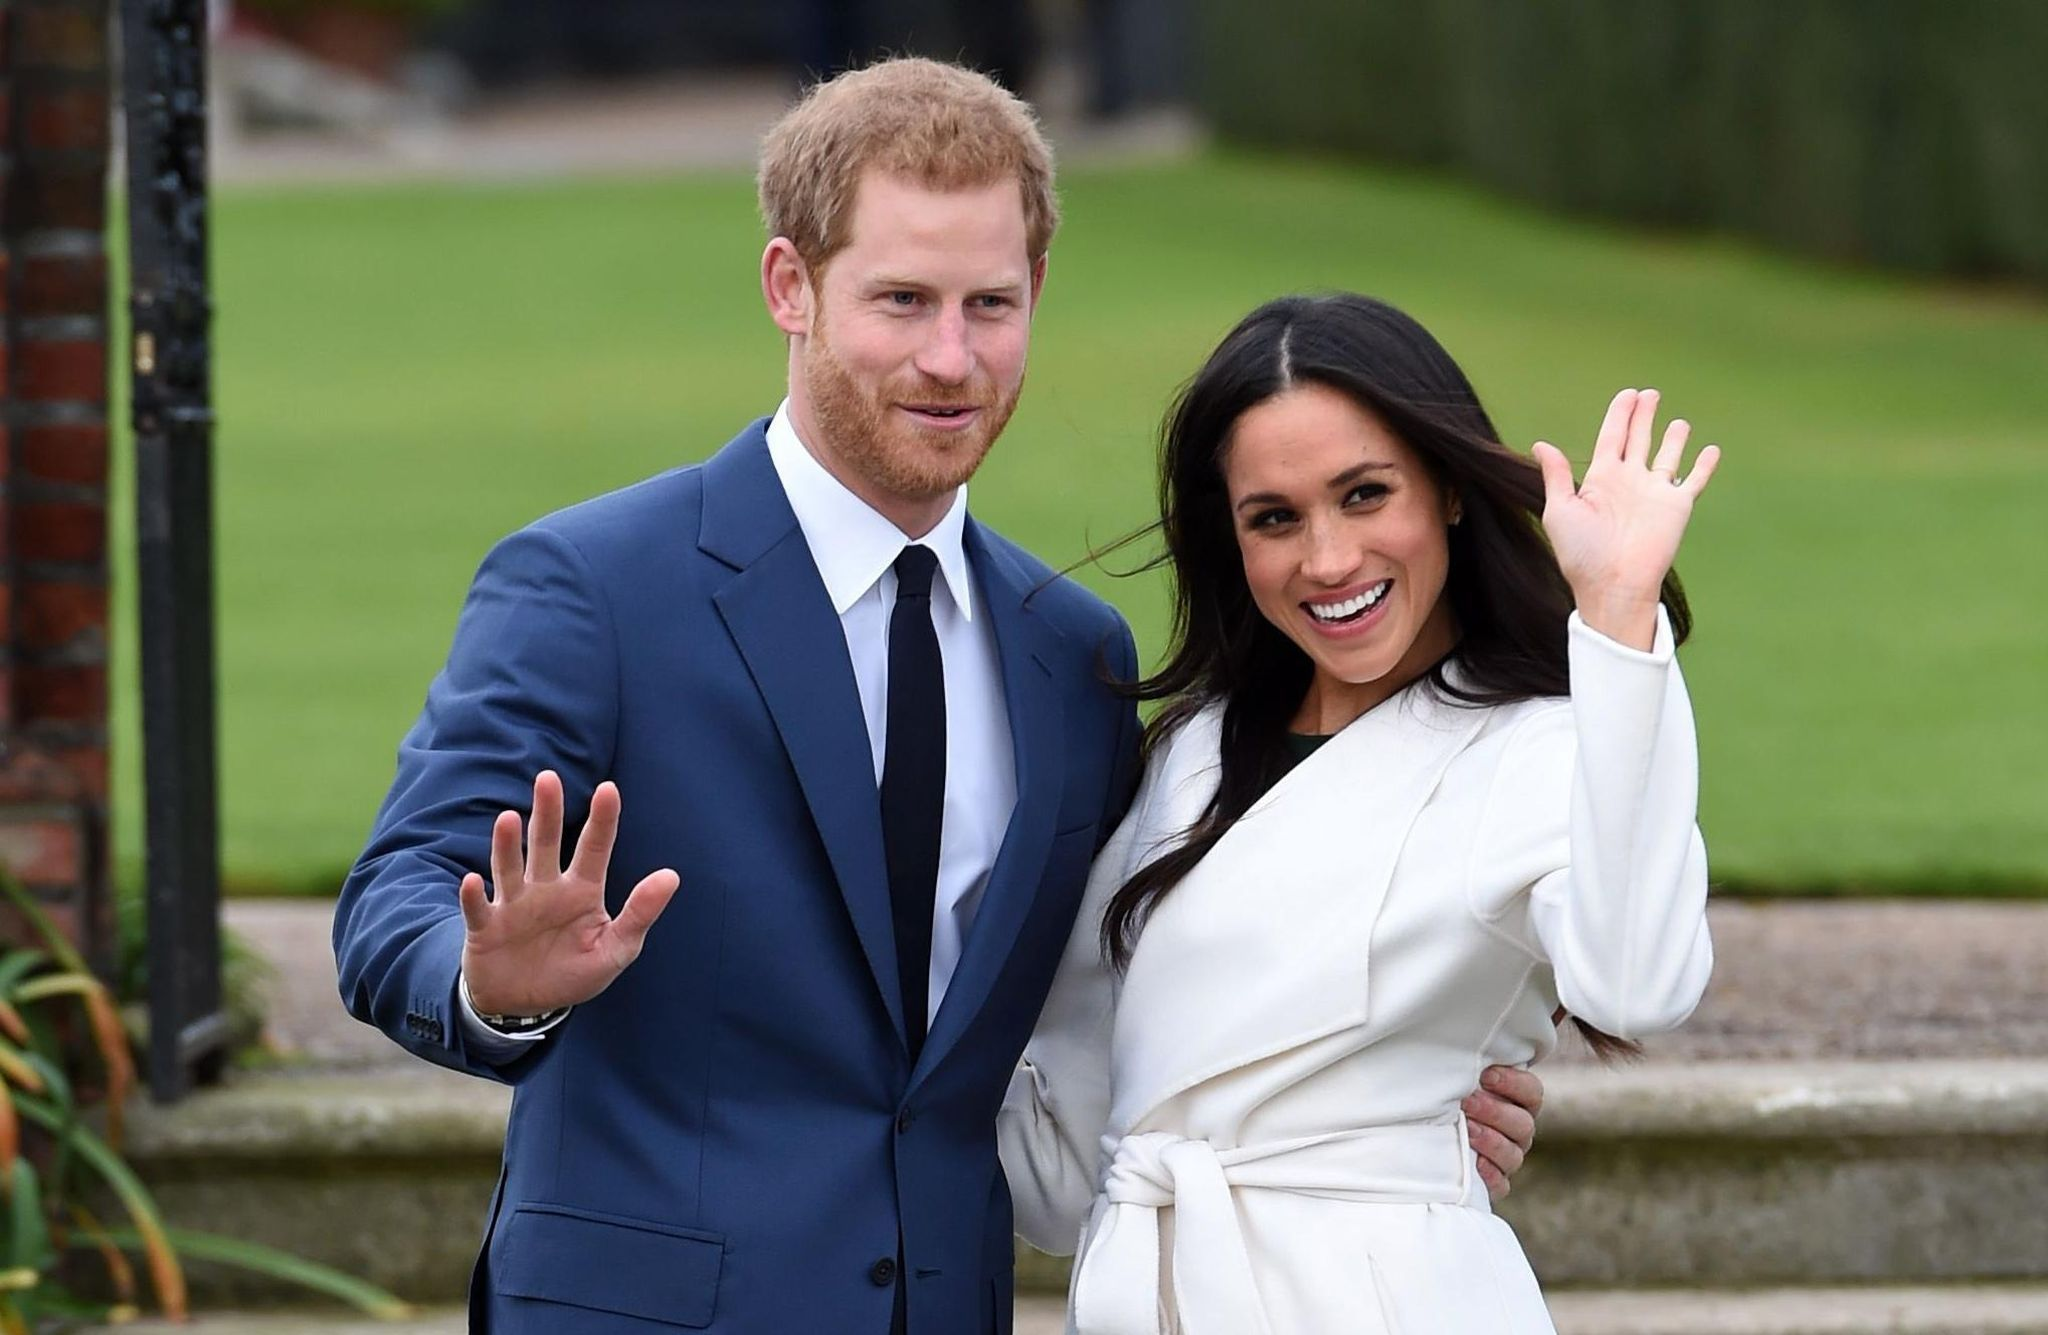 Prince Harry and Meghan Markle posing for the cameras